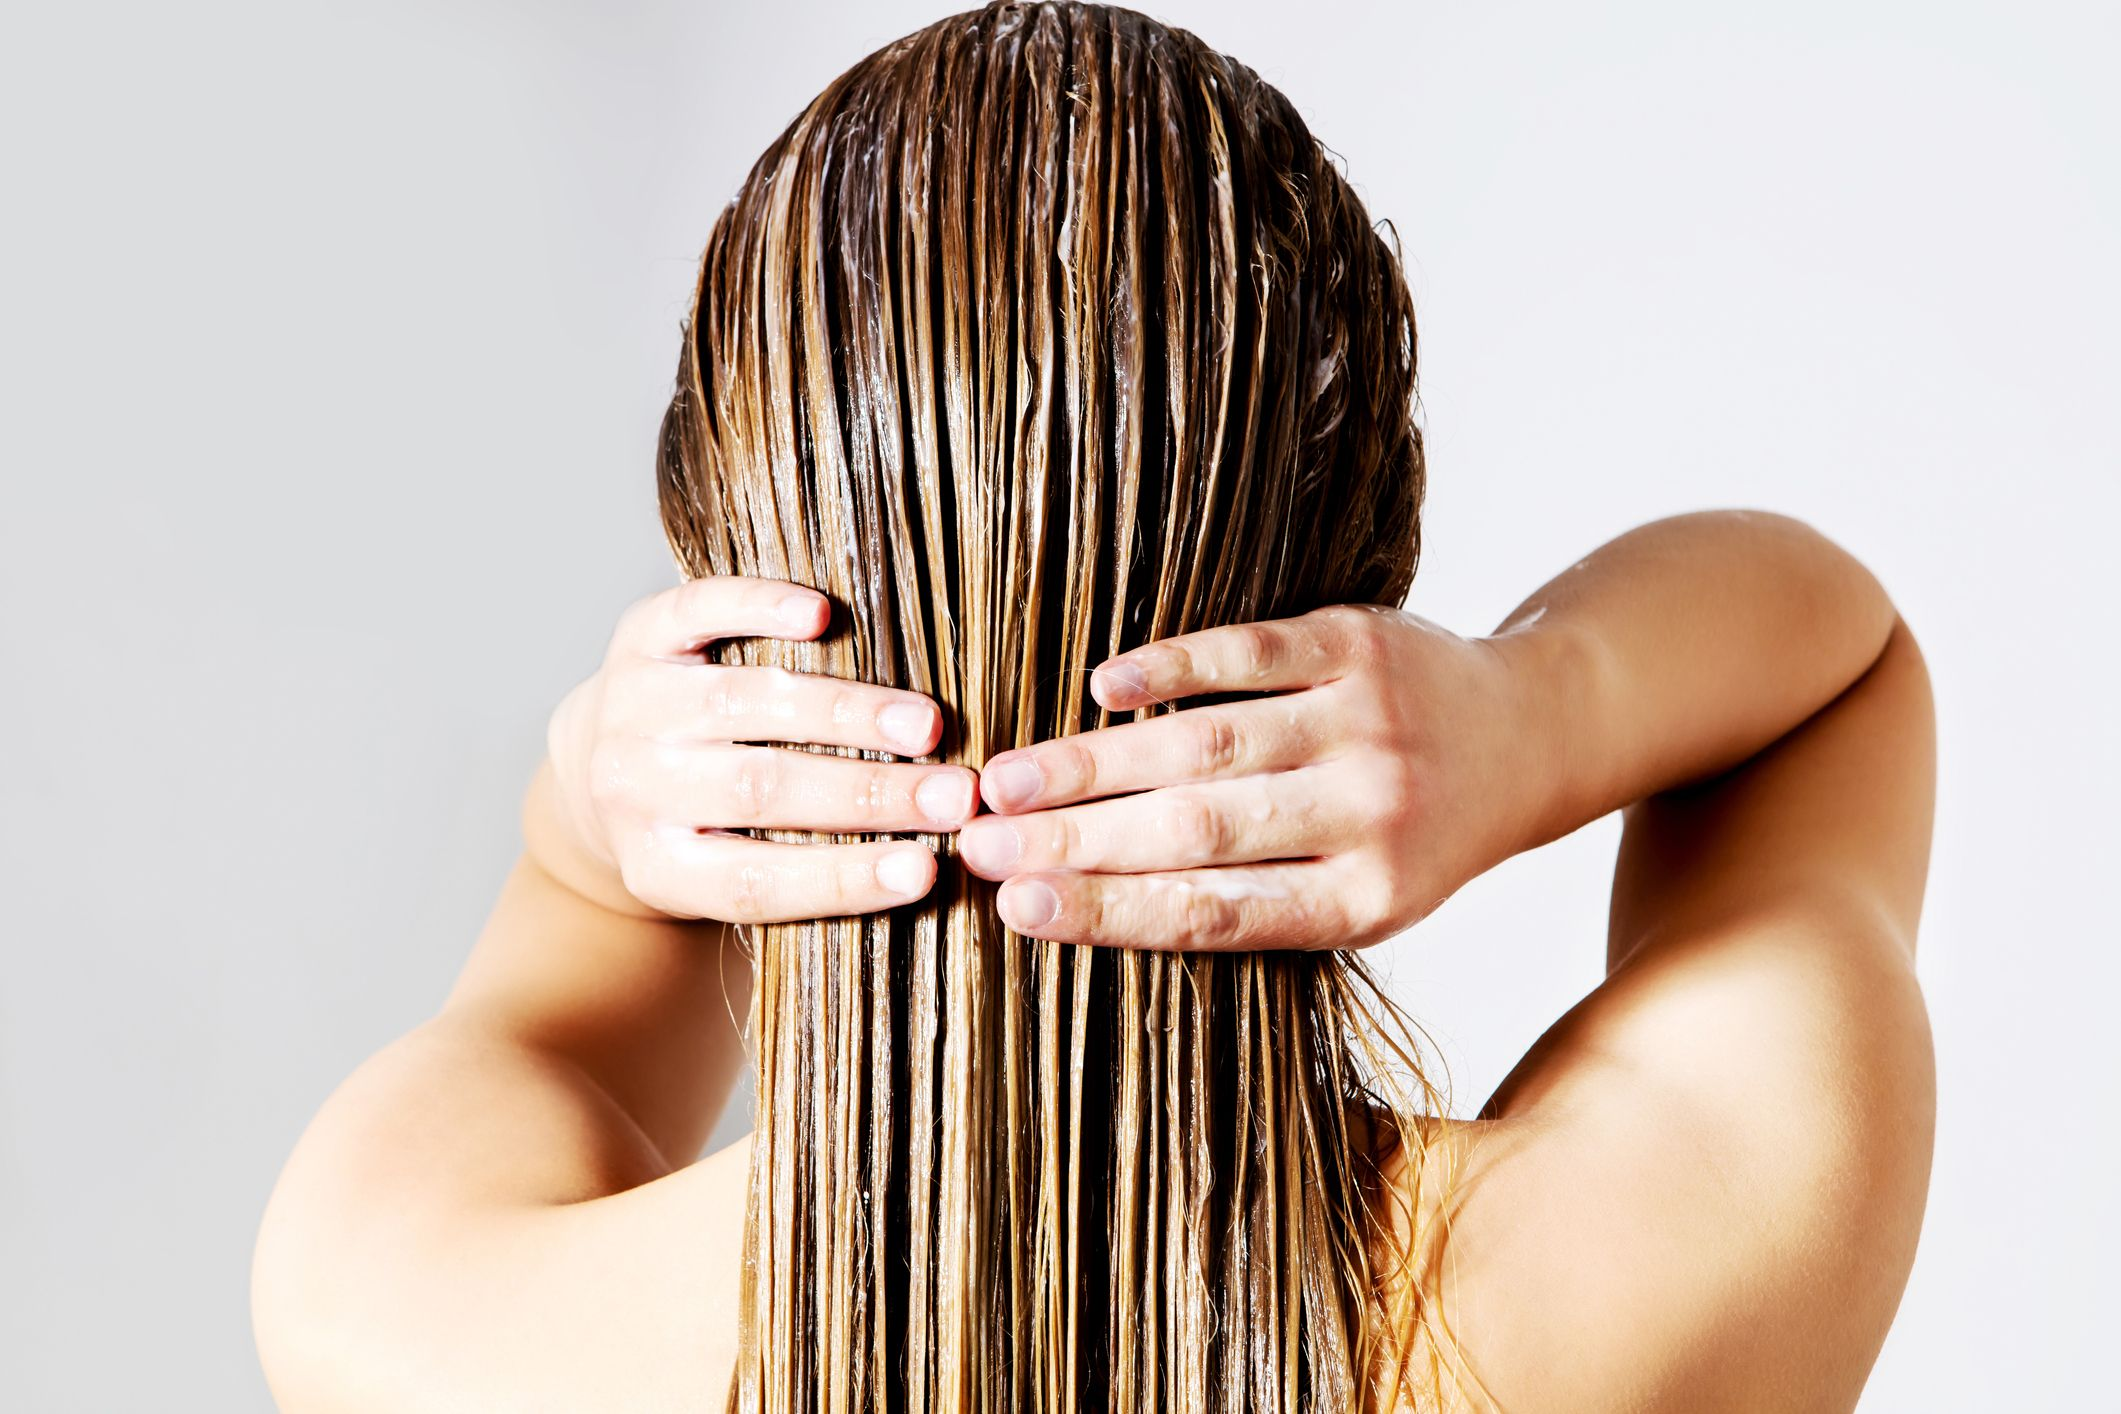 How to Exfoliate Your Scalp for Healthier Hair, According to Dermatologists